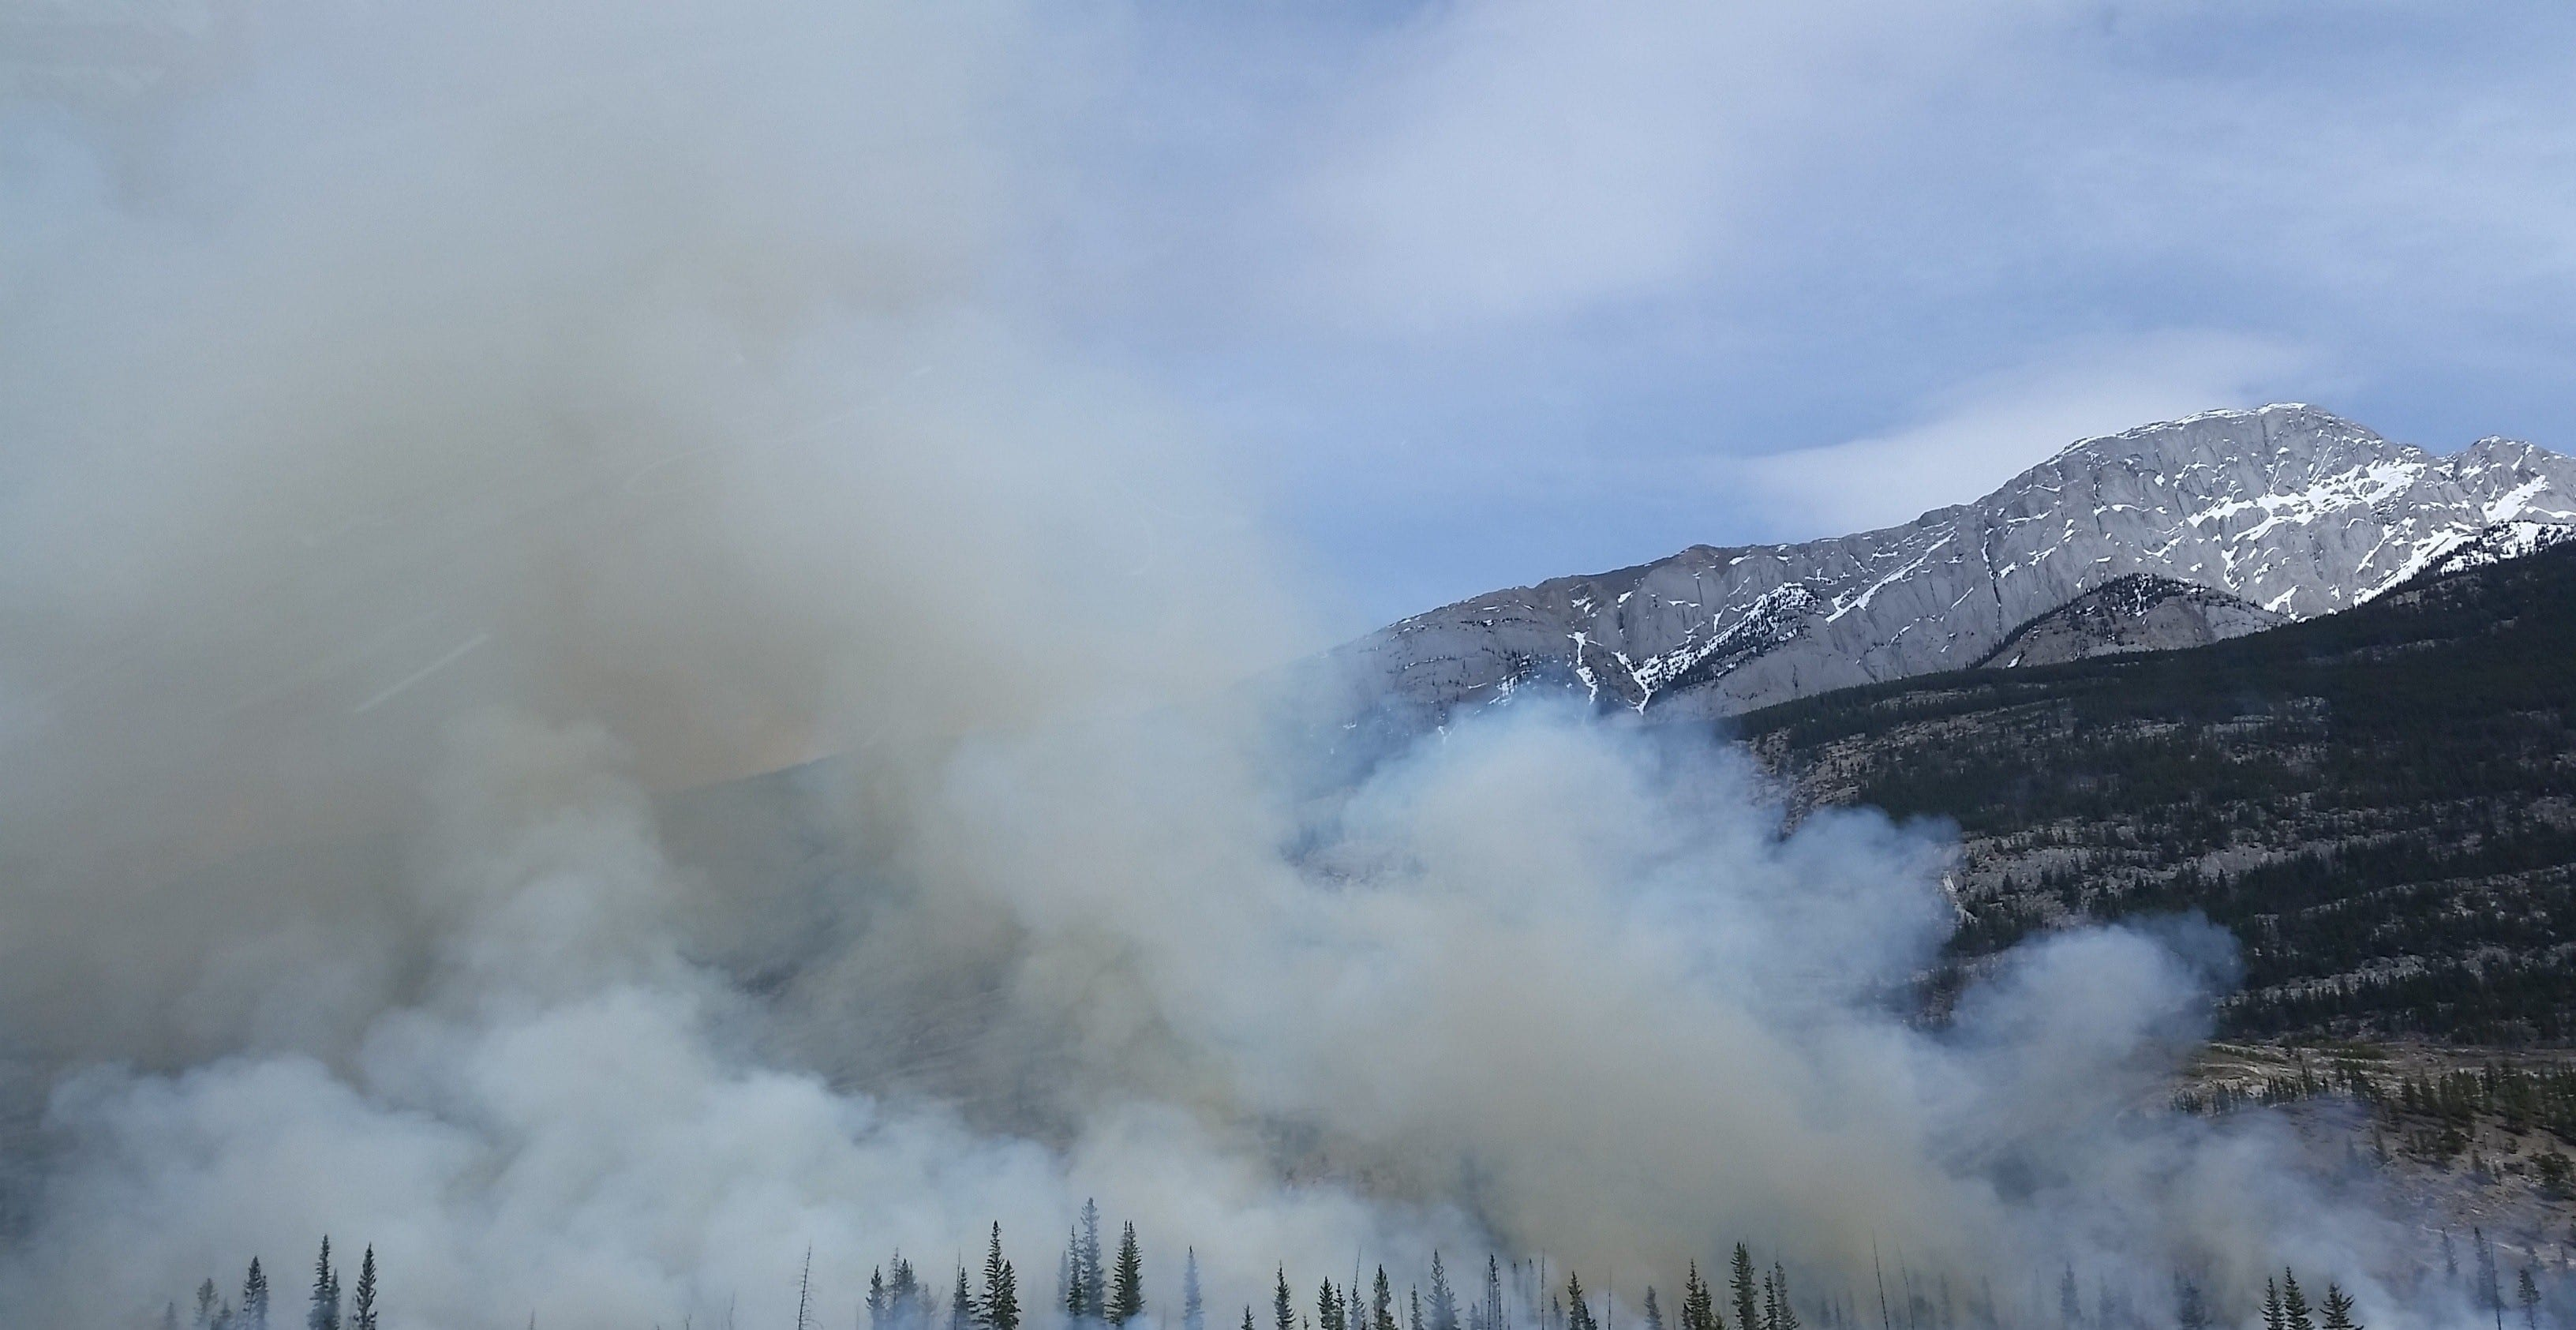 Smoke rises above a forest.